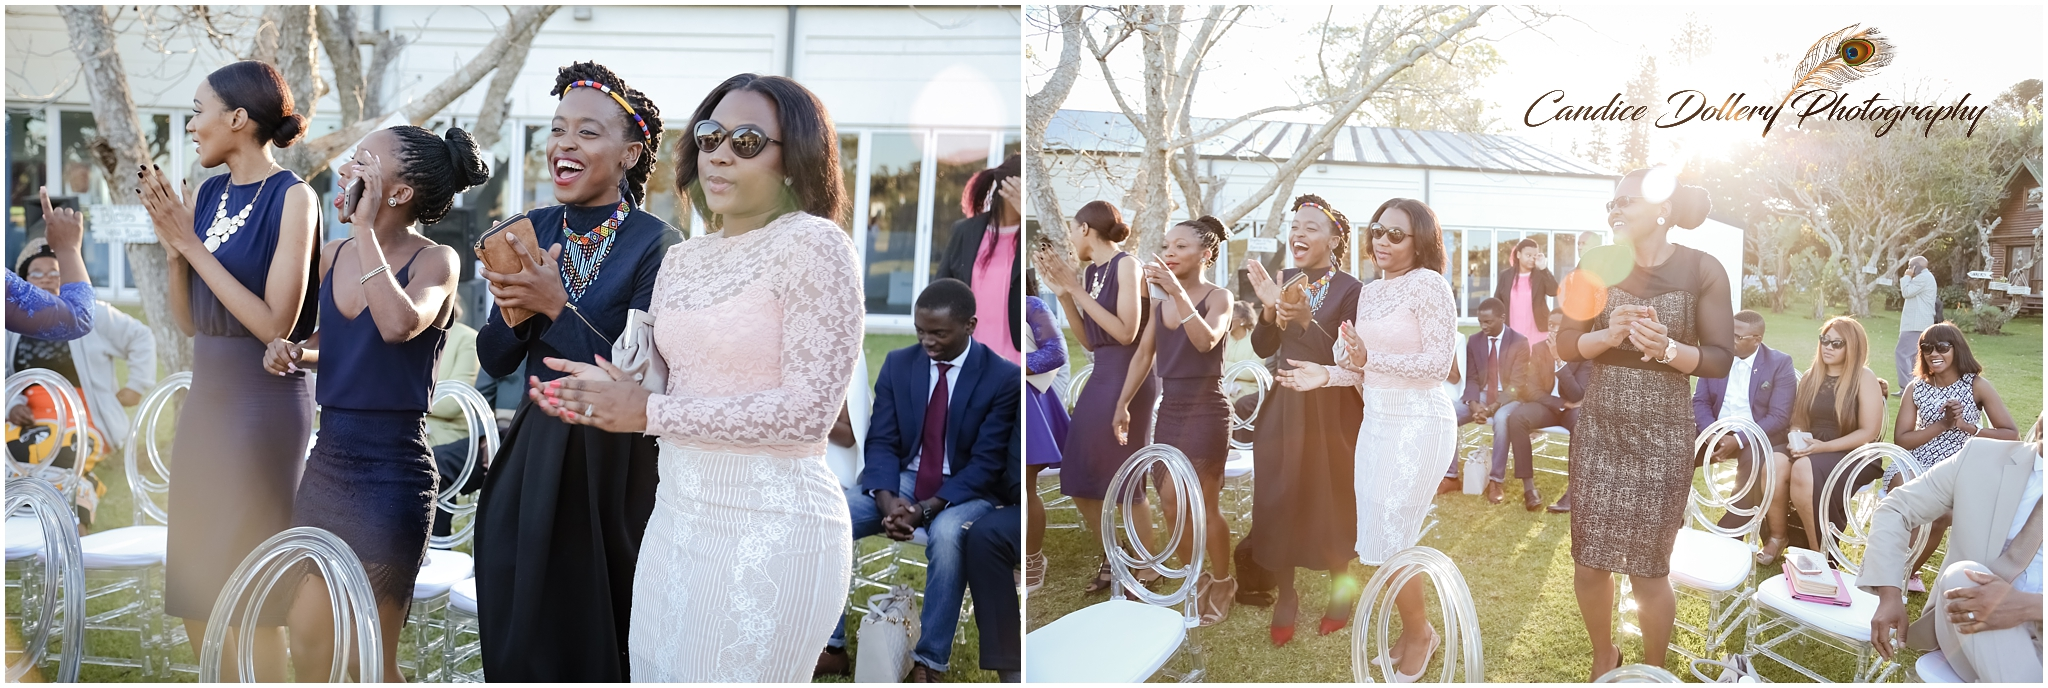 lelethu-kgotsos-wedding-candice-dollery-photography_1650